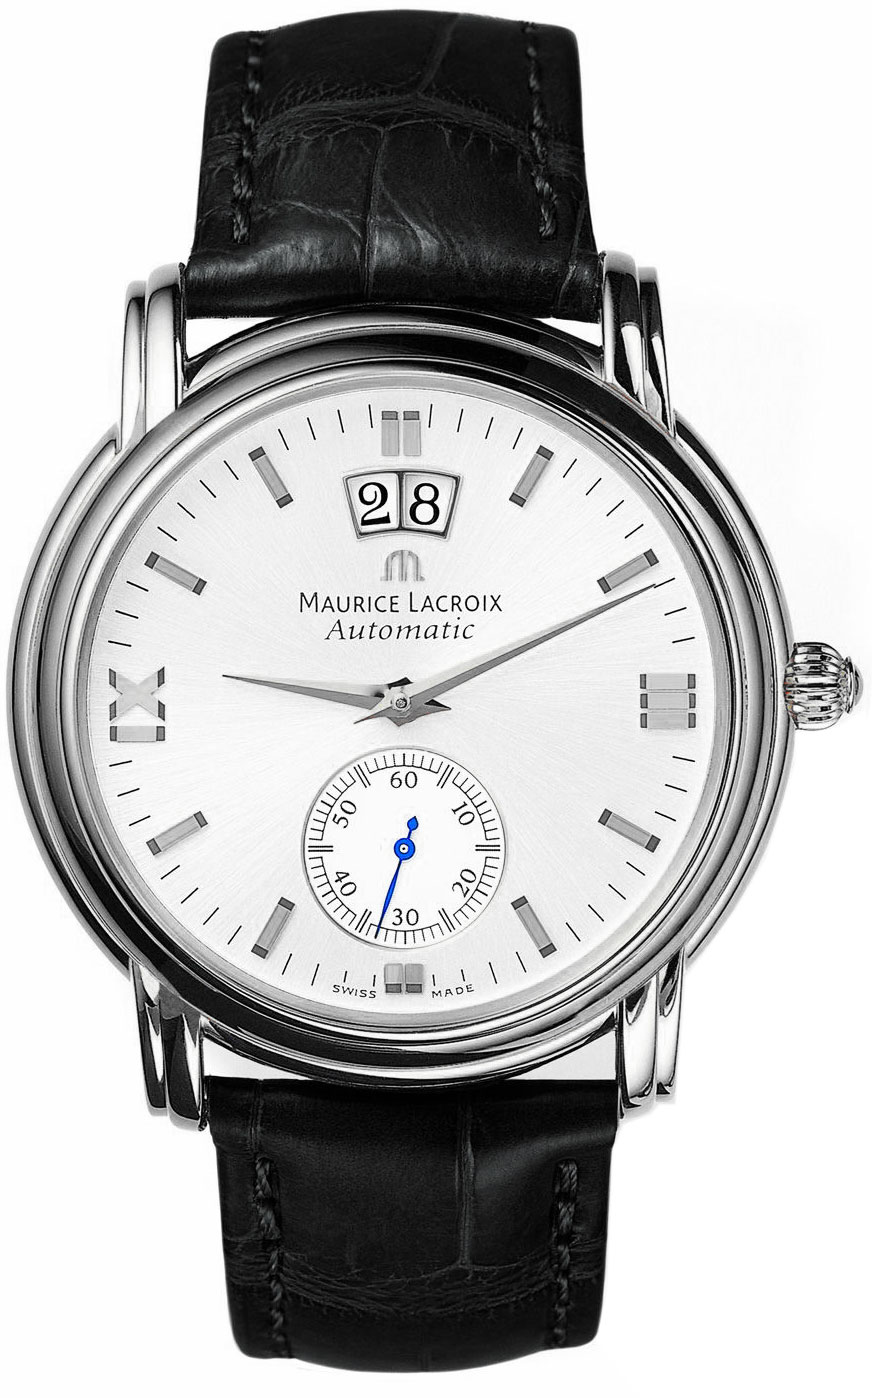 Maurice lacroix masterpiece grand guichet men 39 s watch model mp6378 ss001 290 for Maurice lacroix watches